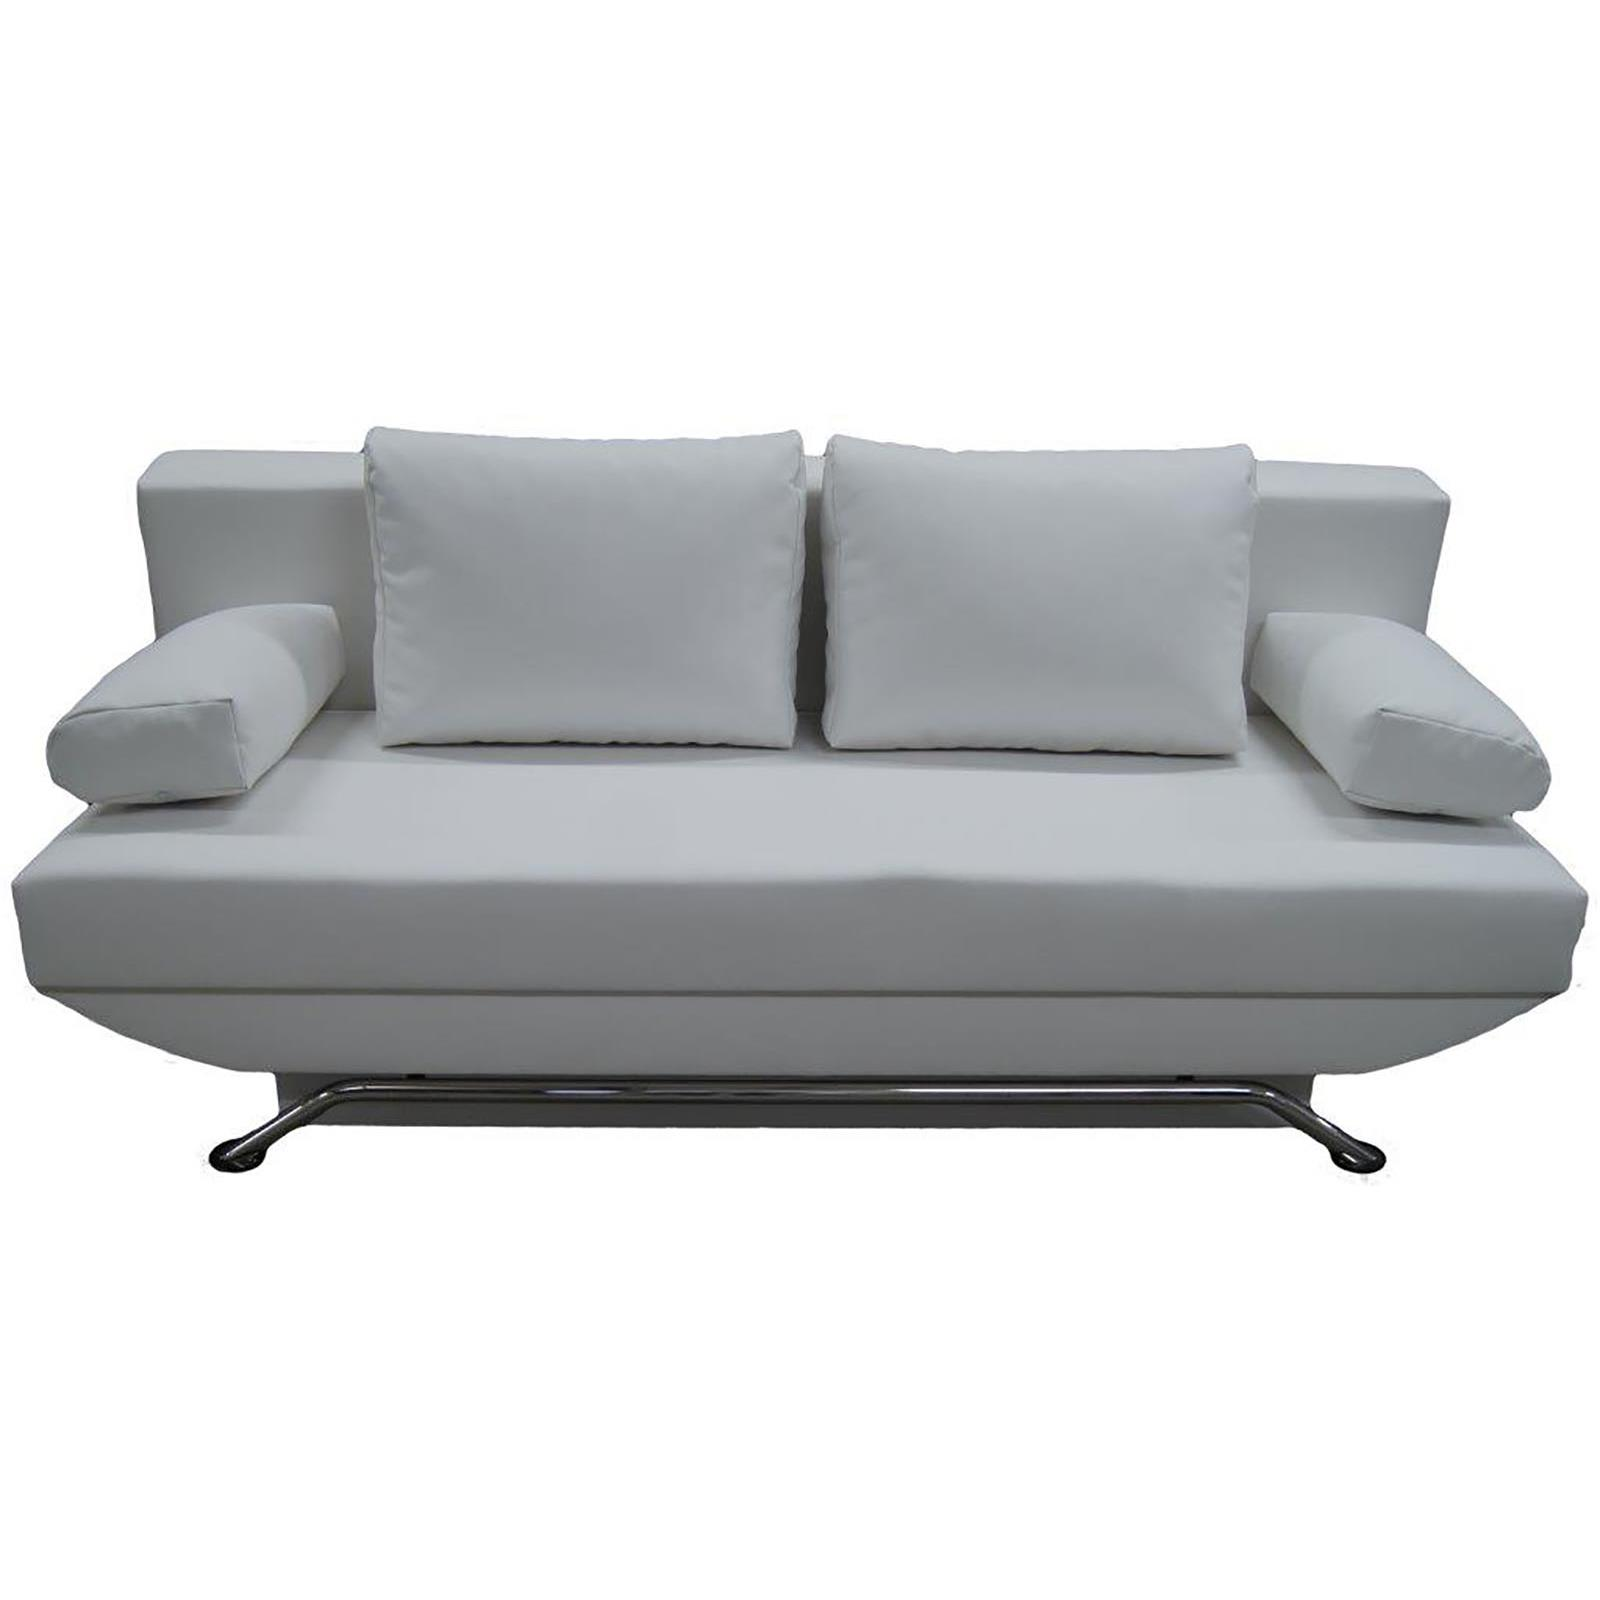 schlafsofa couch mit bettkasten in schwarz oder weiss 3 sitzer kunstleder modern ebay. Black Bedroom Furniture Sets. Home Design Ideas